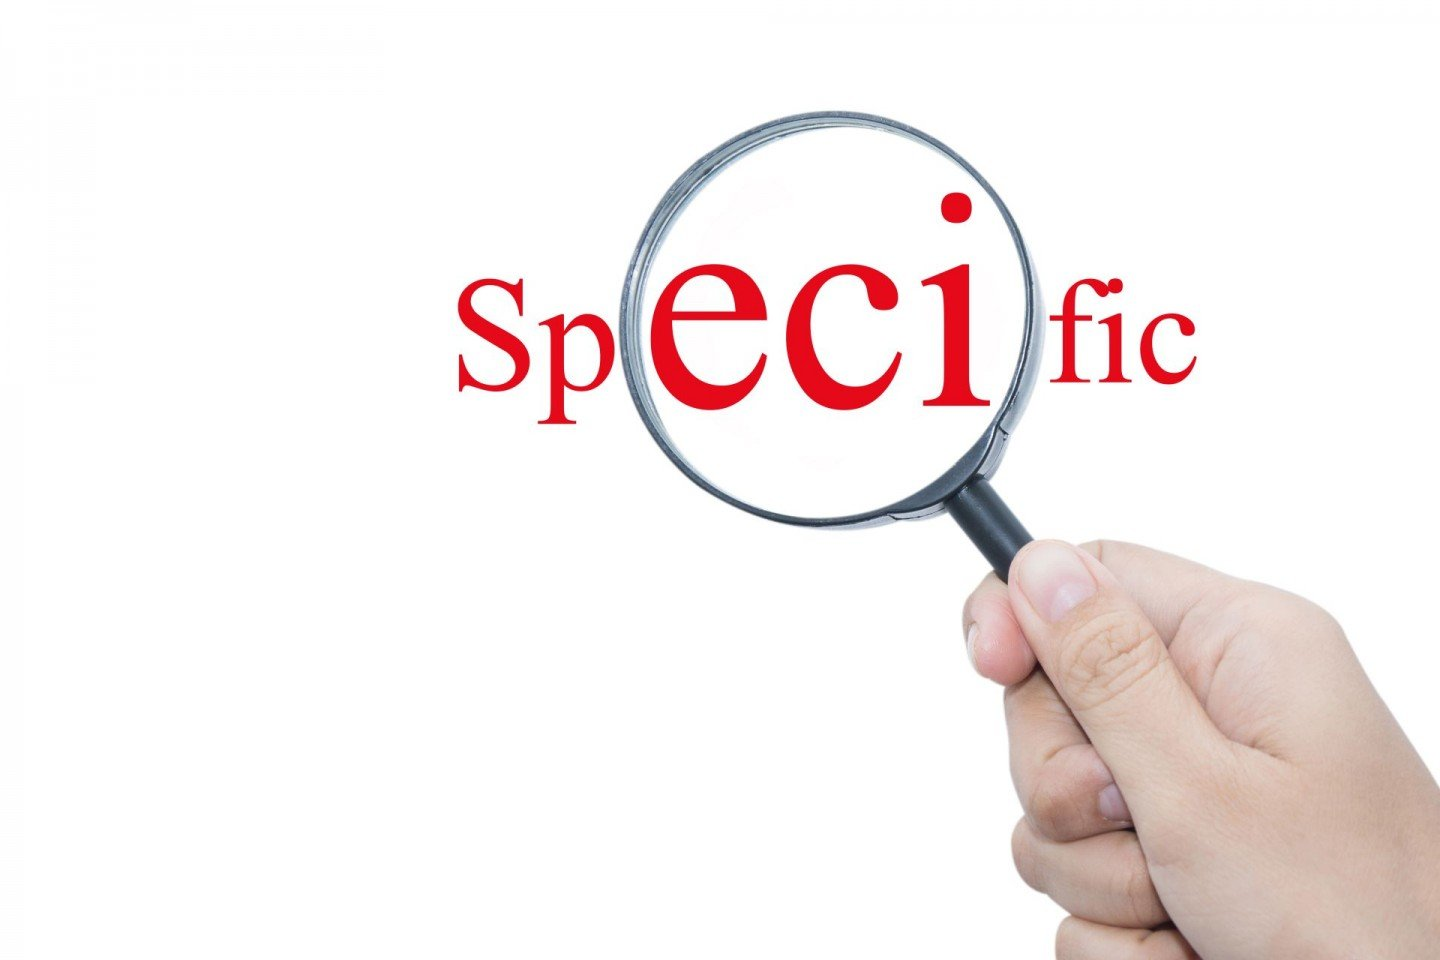 magnifying glass specifc